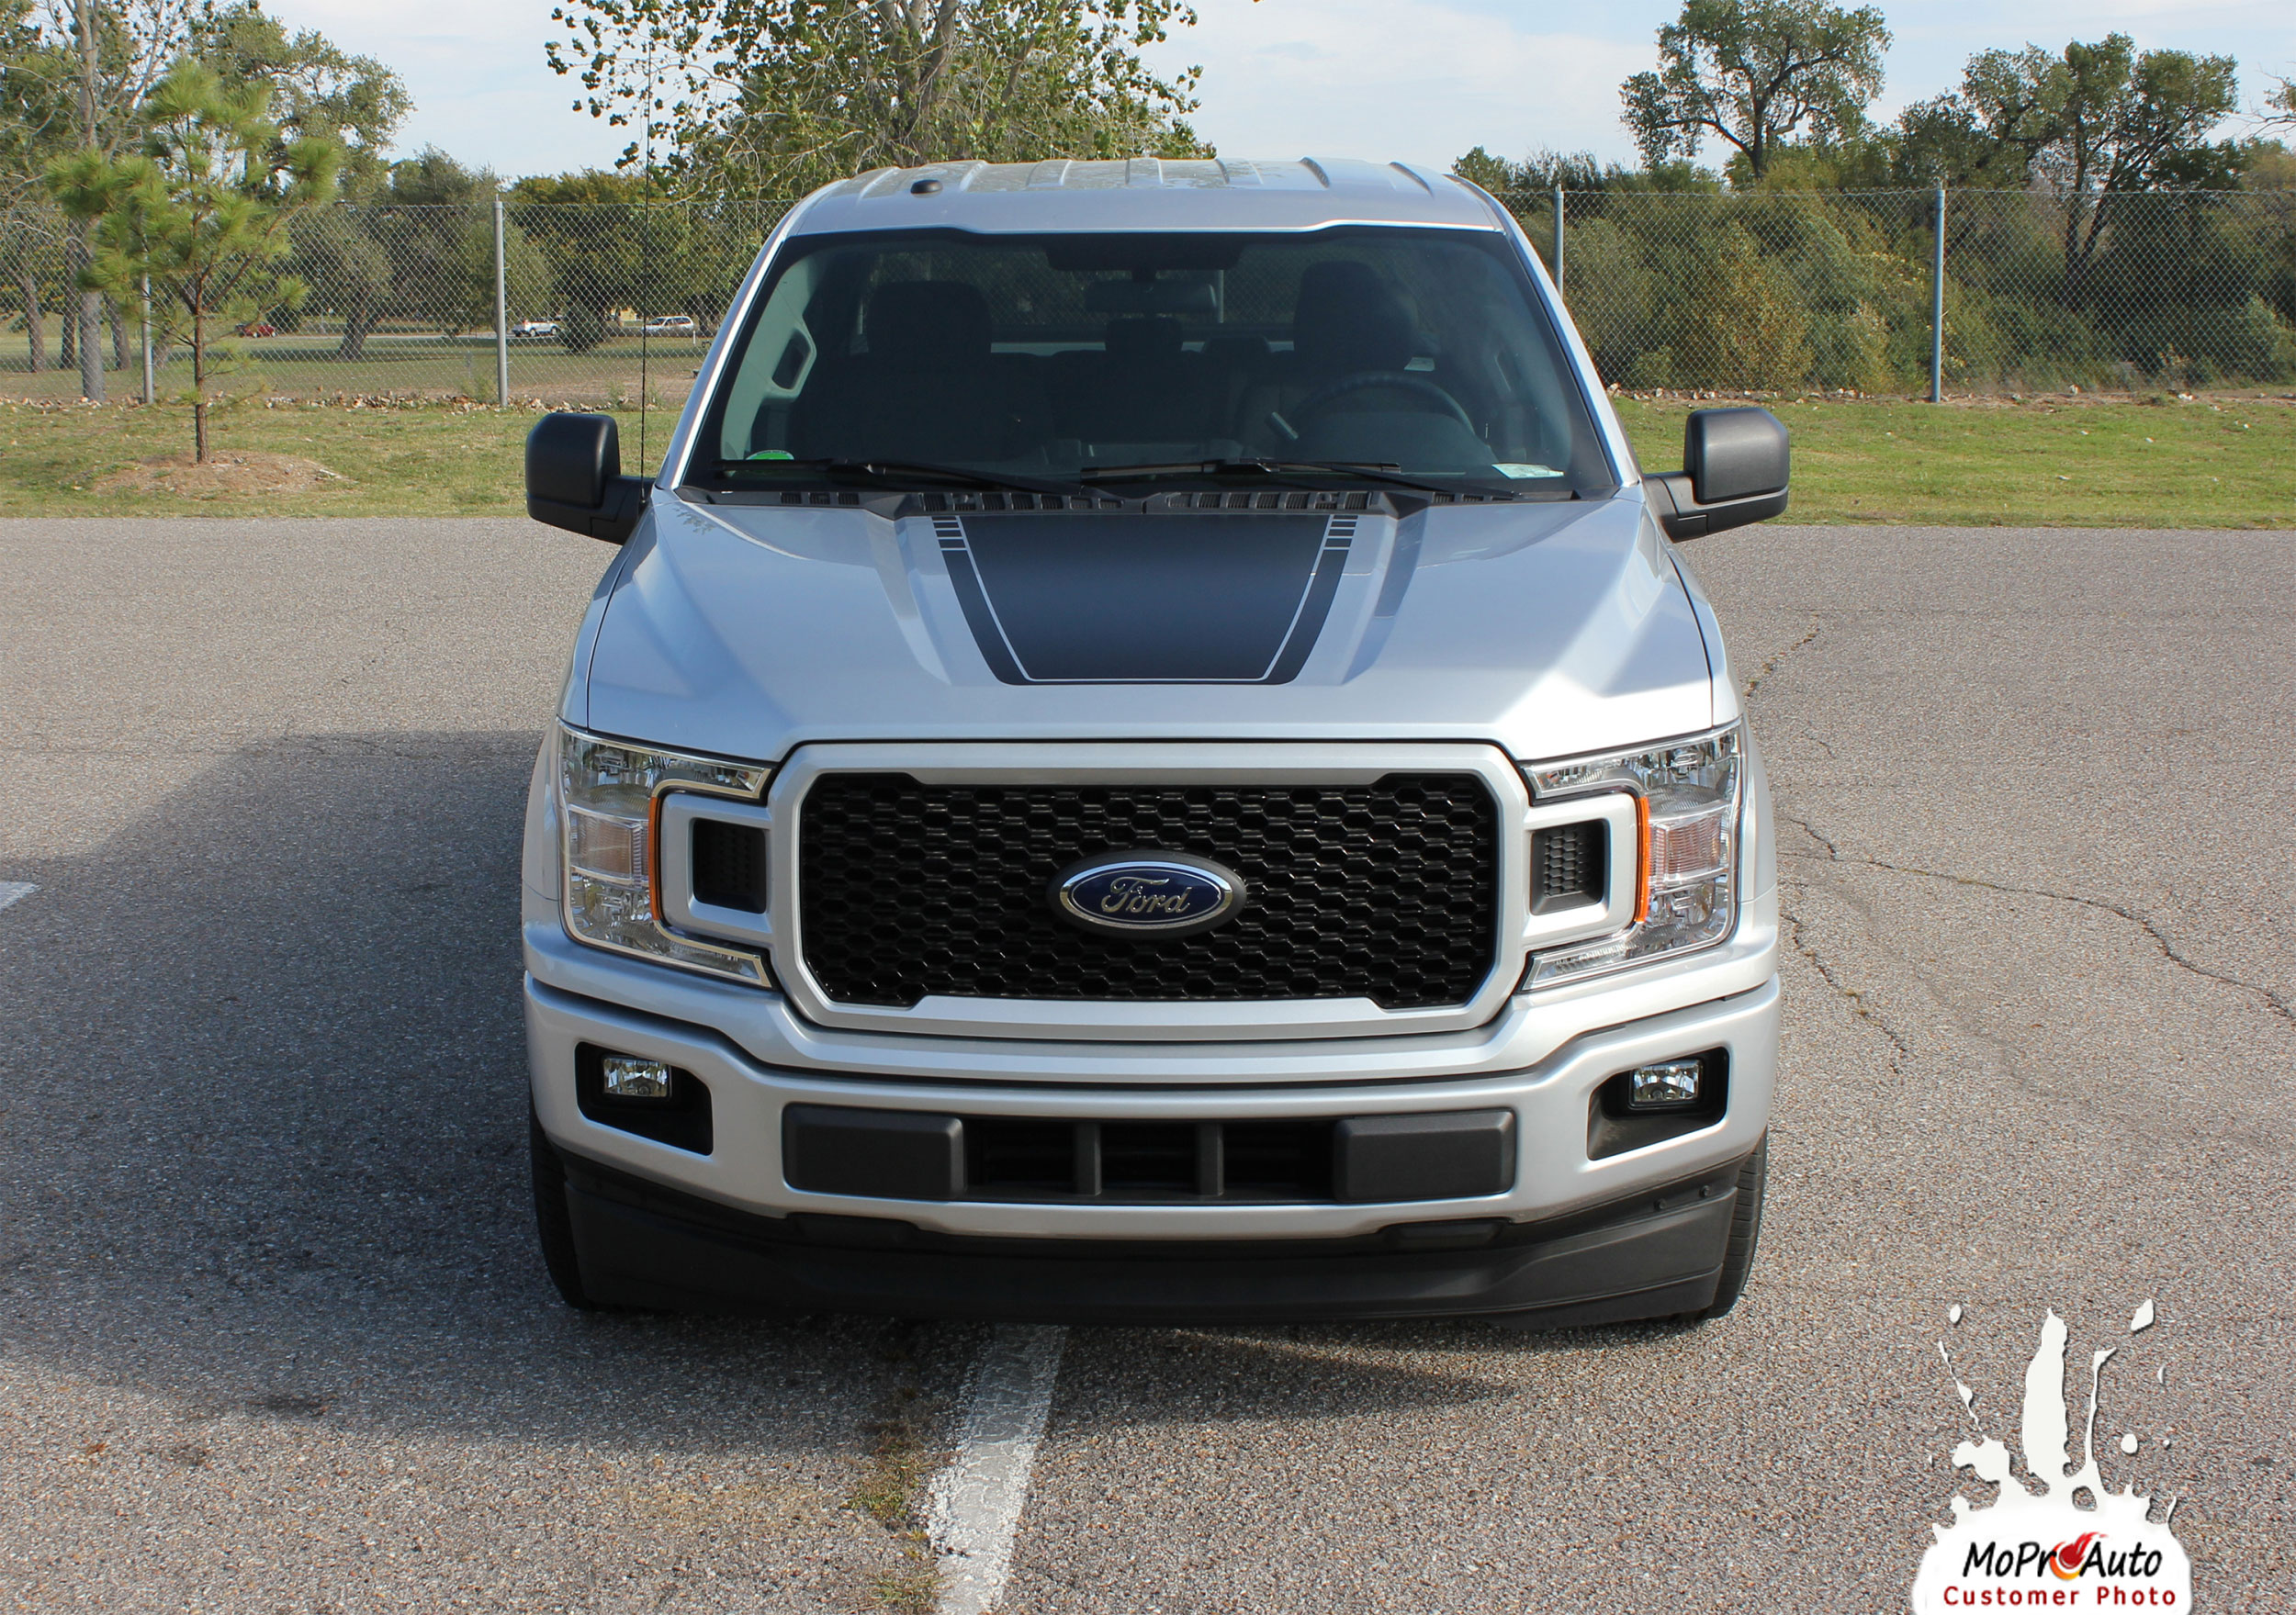 SPEEDWAY HOOD Ford F-Series F-150 Appearance Package Vinyl Graphics and Decals Kit - Customer Photo